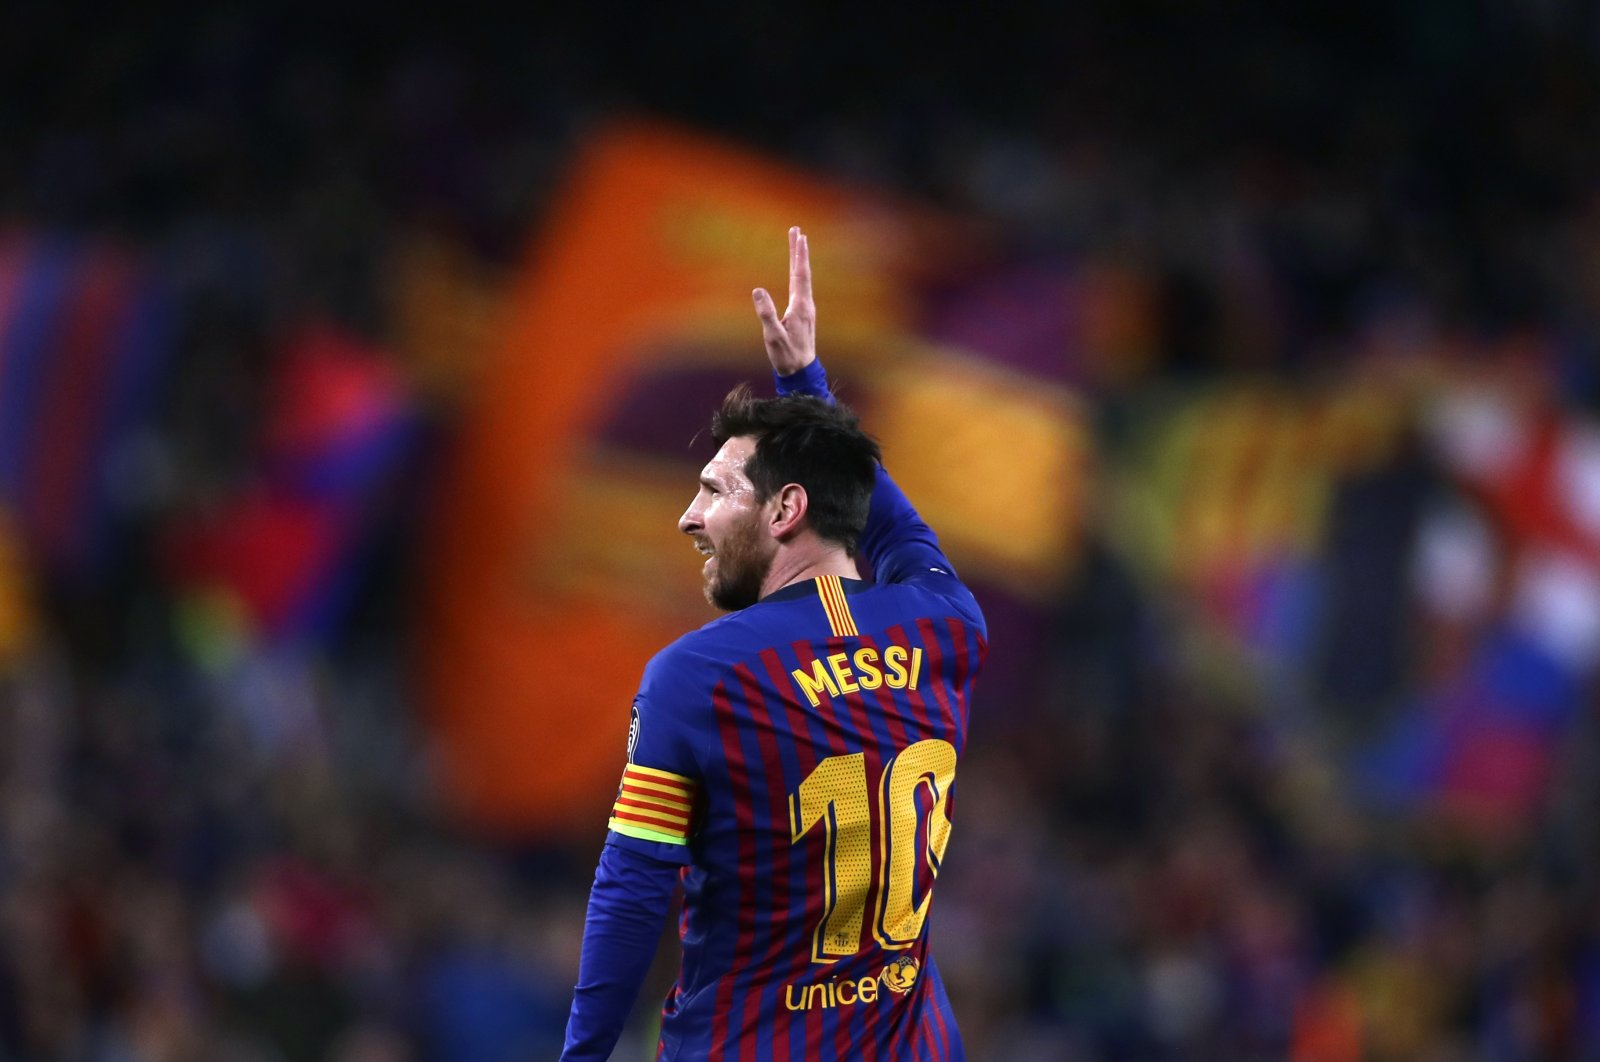 Barcelona forward Lionel Messi celebrates after scoring his side's second goal during the Champions League quarterfinal, second leg match against Manchester United at the Camp Nou stadium in Barcelona, Spain, April 16, 2019. (AP Photo)